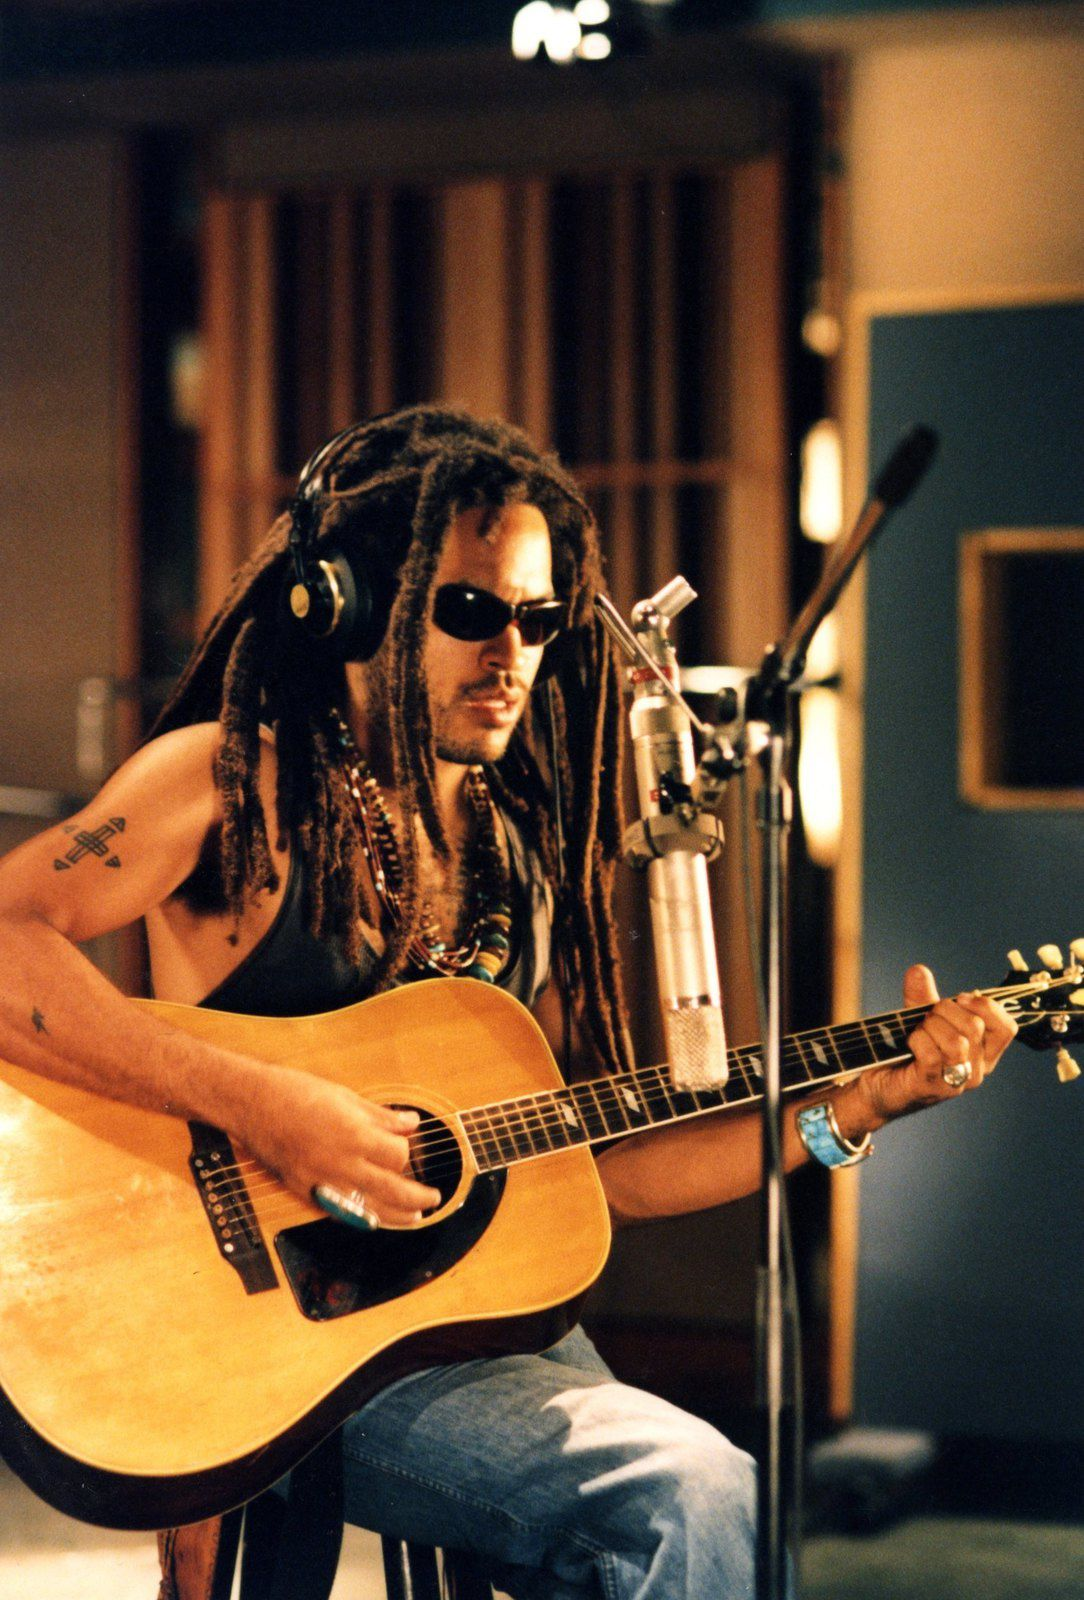 Lenny Kravitz records acoustic guitar at Battery Studios for the song 'U Will Know' which was released as part of the all-star Jason's Lyric soundtrack in 1994 in New York, New York. (Photo by Al Pereira/Michael Ochs Archives/Getty Images)